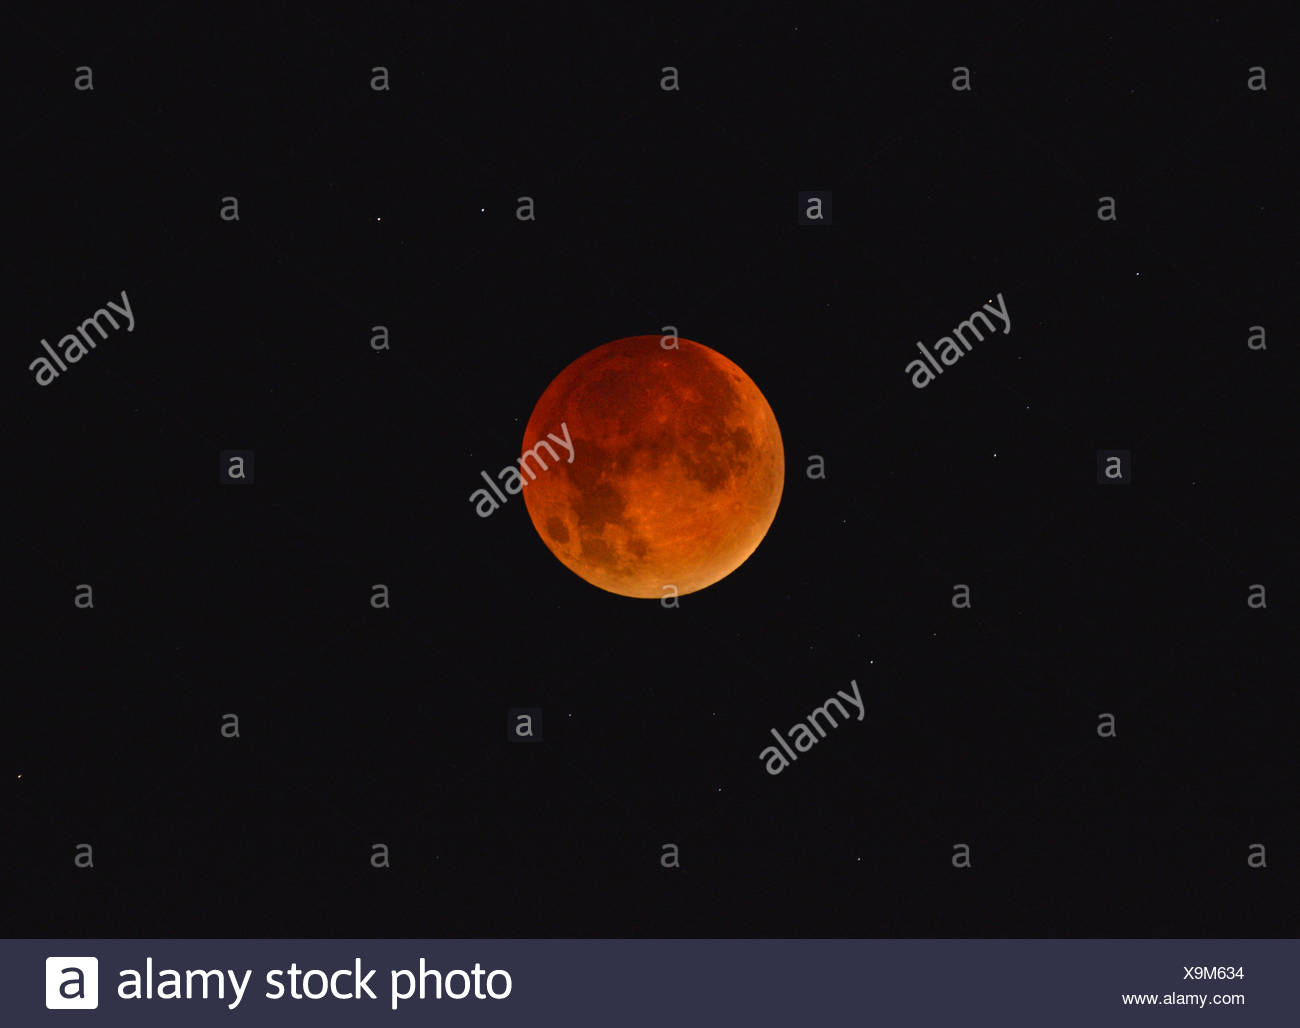 Lunar eclipse/Red Moon - Stock Image